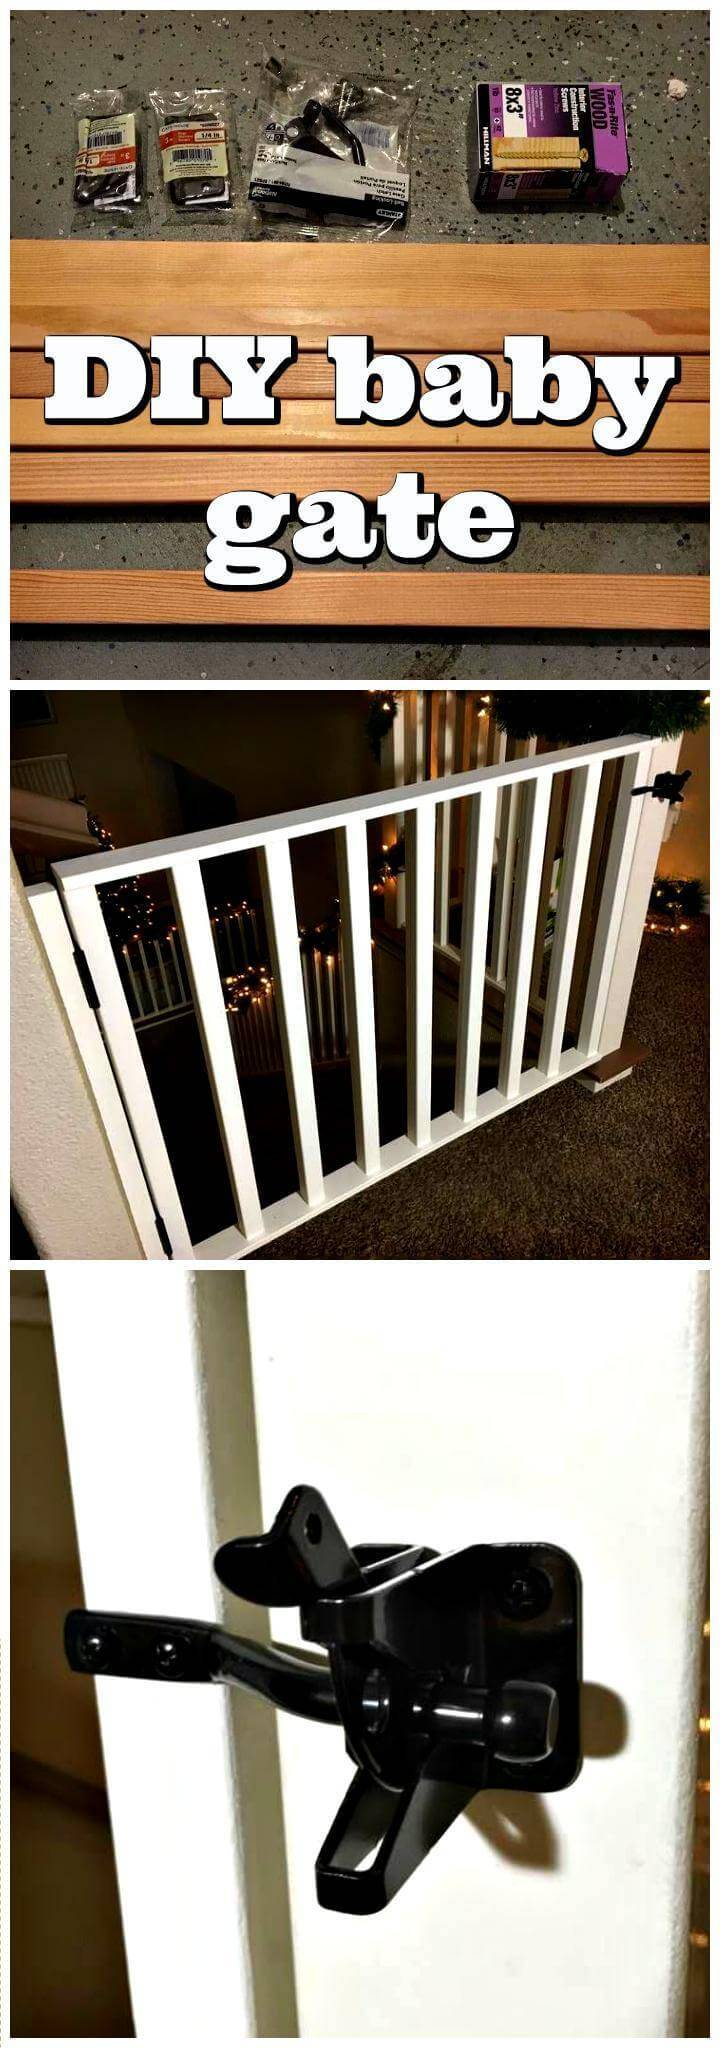 DIY baby gate step-by-step tutorial